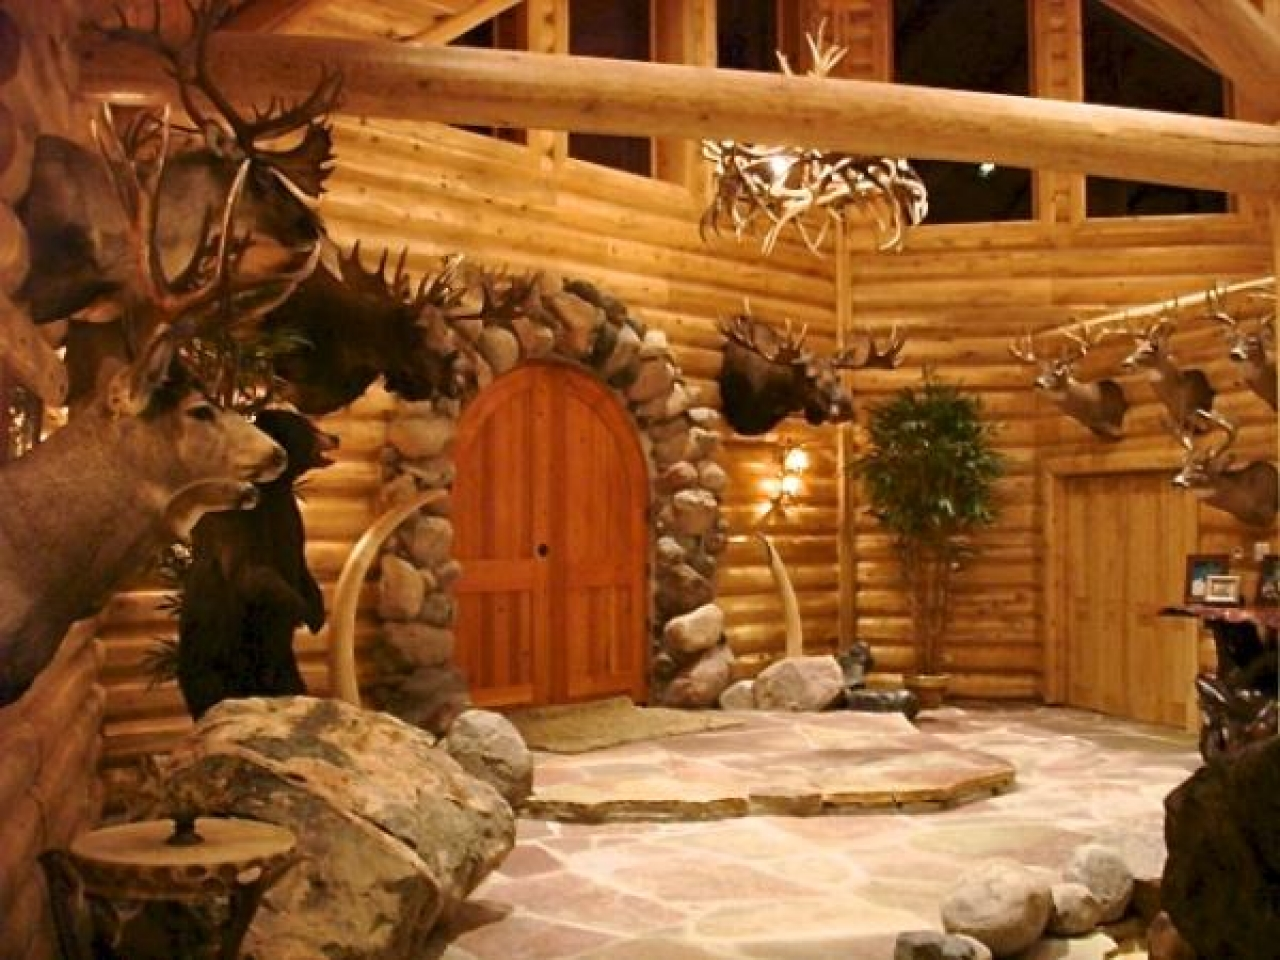 Marie log home 20 home design garden architecture blog for Log homes magazine